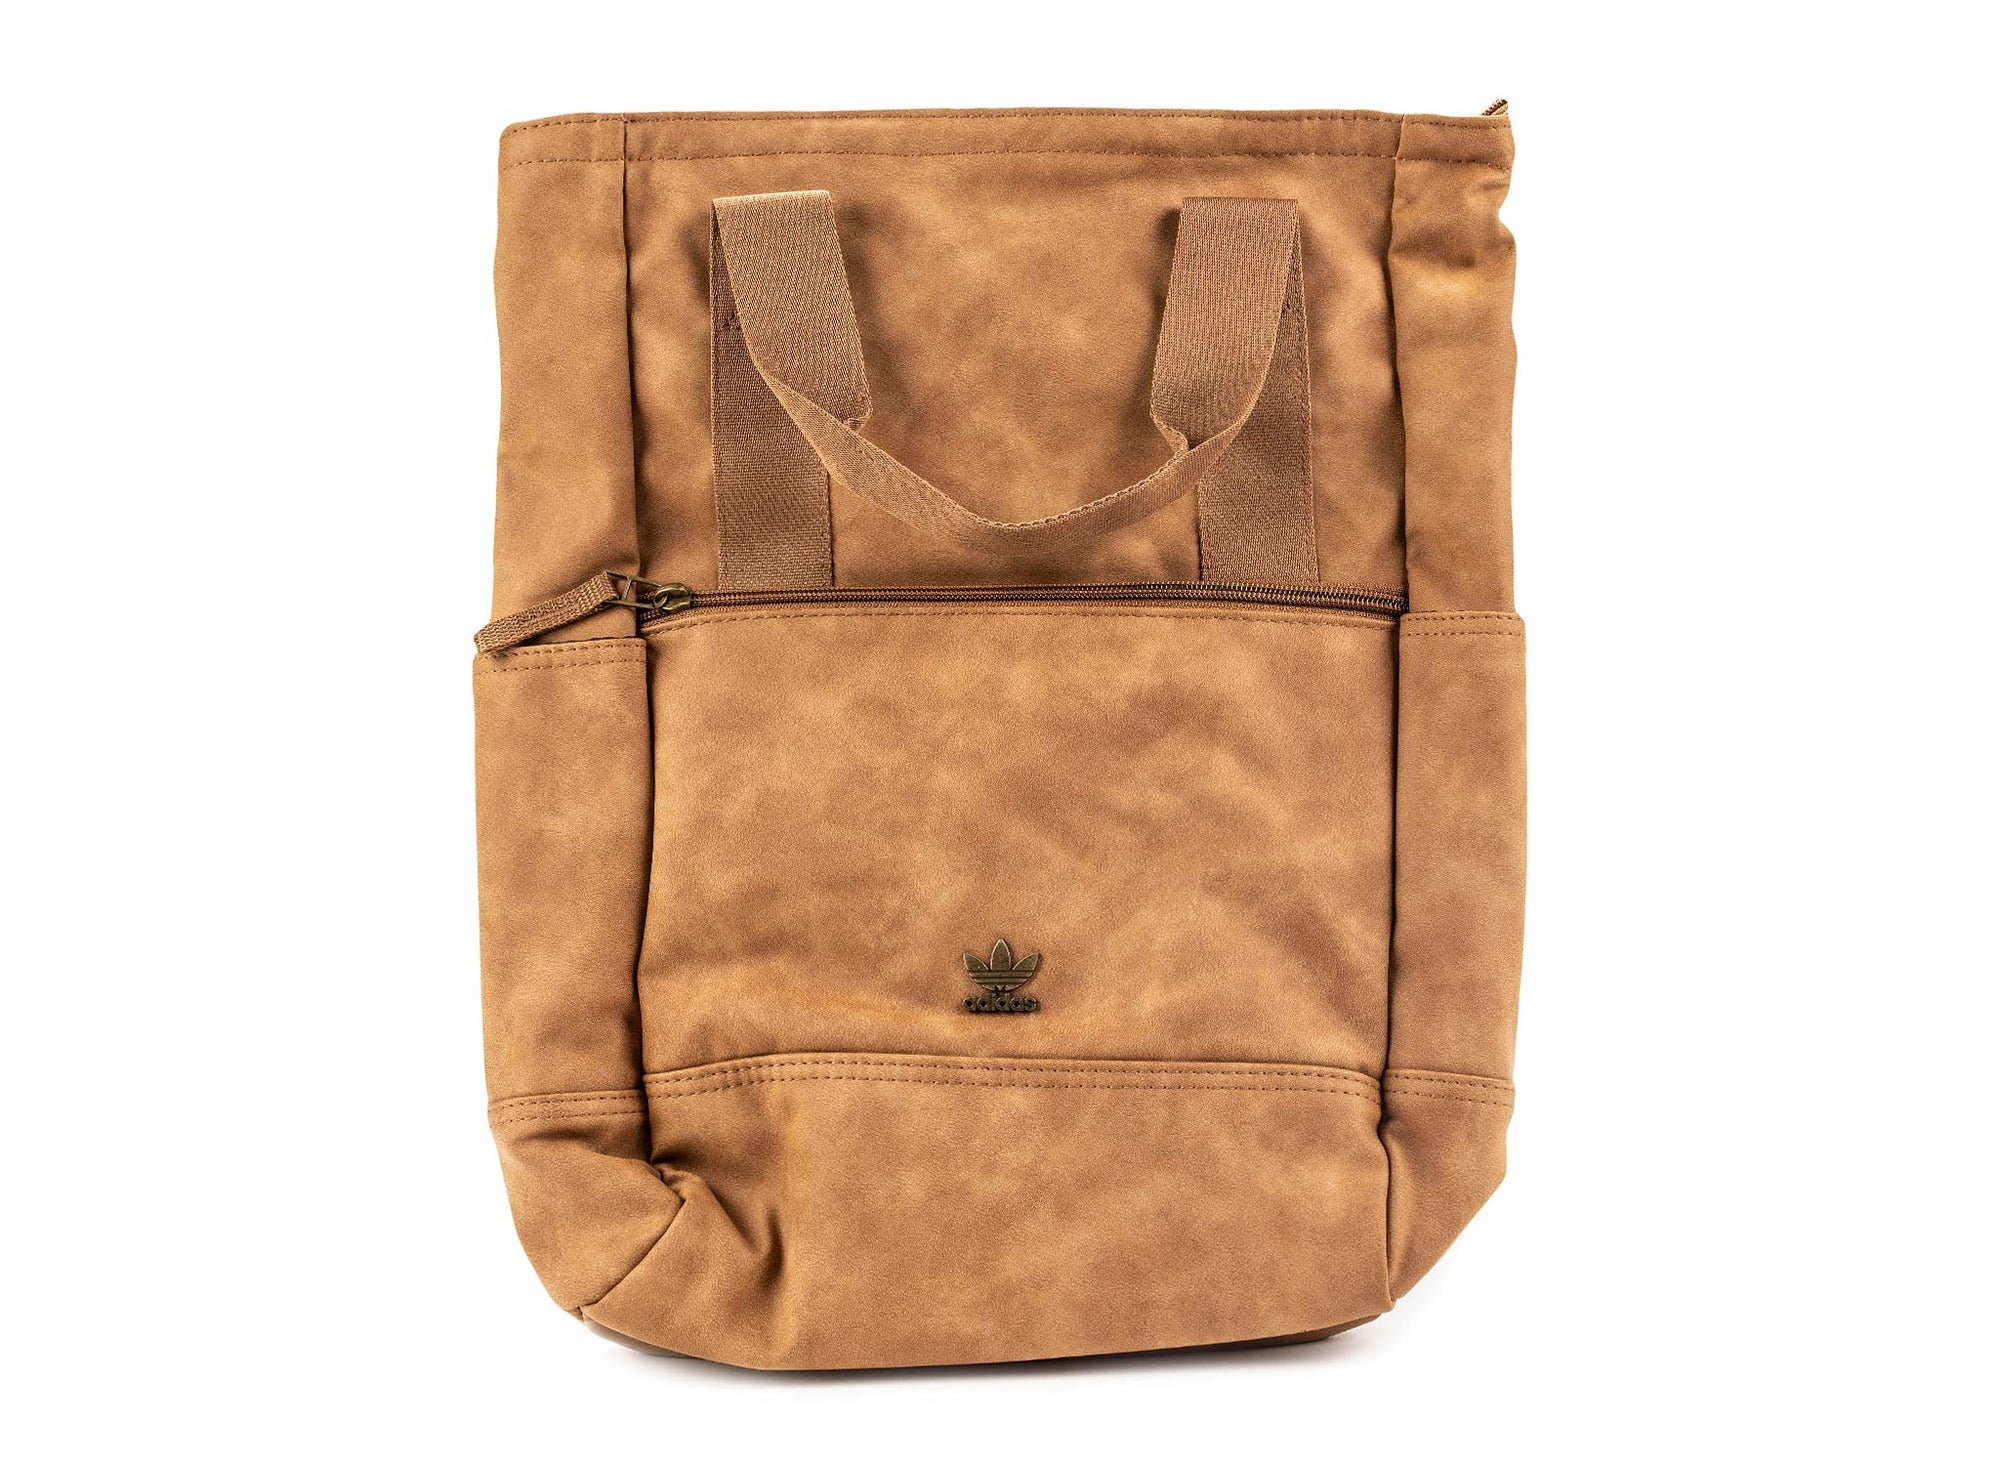 Adidas Tote 3 Suede Backpack 'Brown'